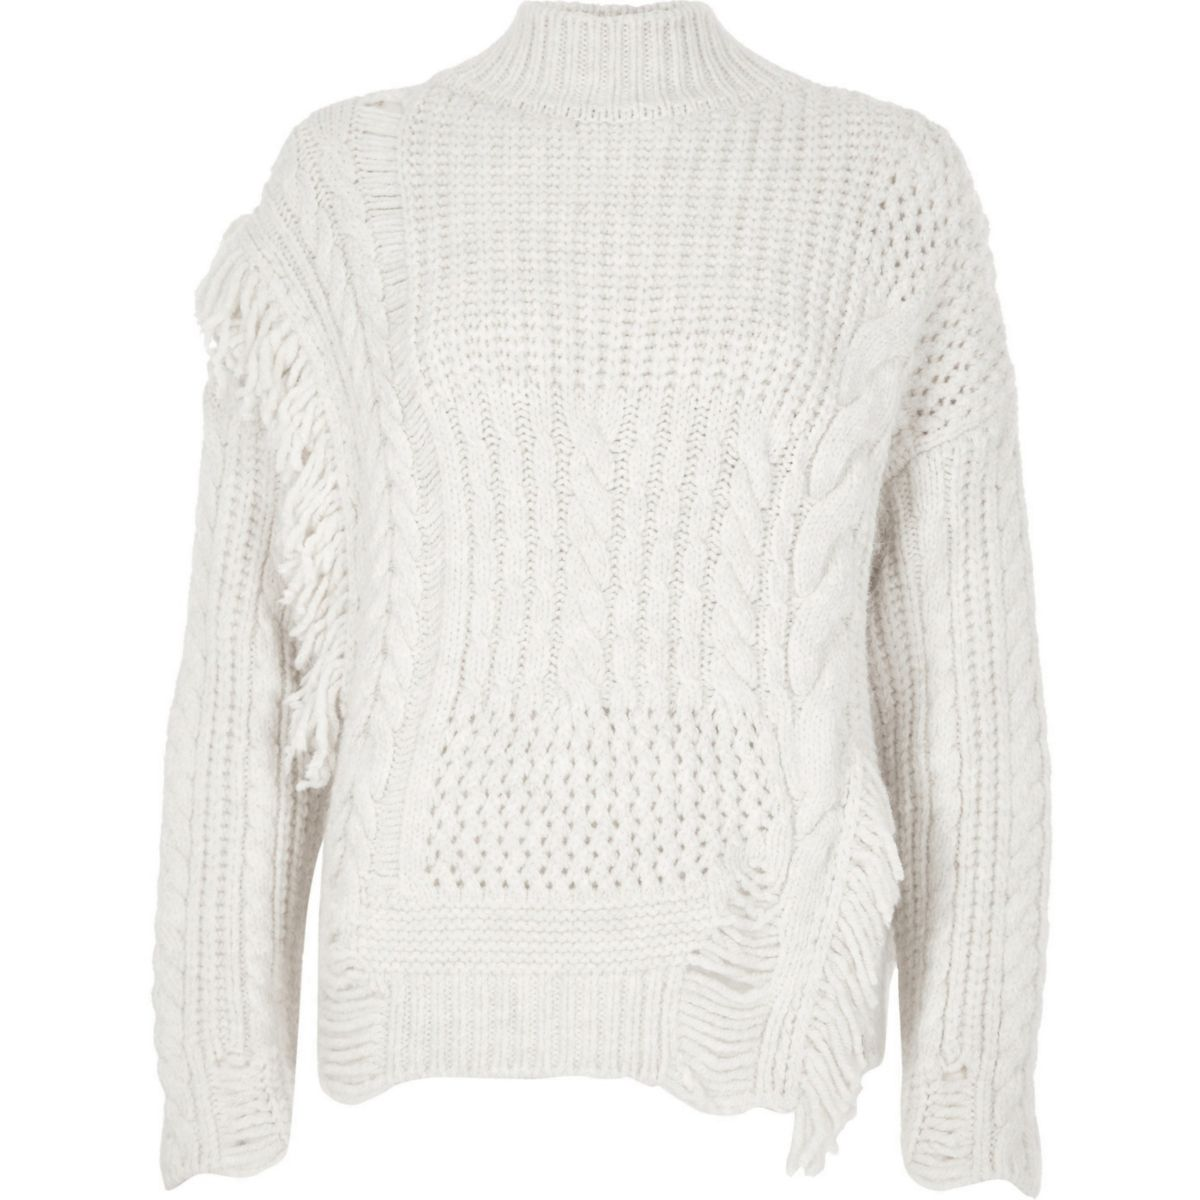 Cream mixed stitch fringe cable knit sweater - Sweaters - Knitwear ...